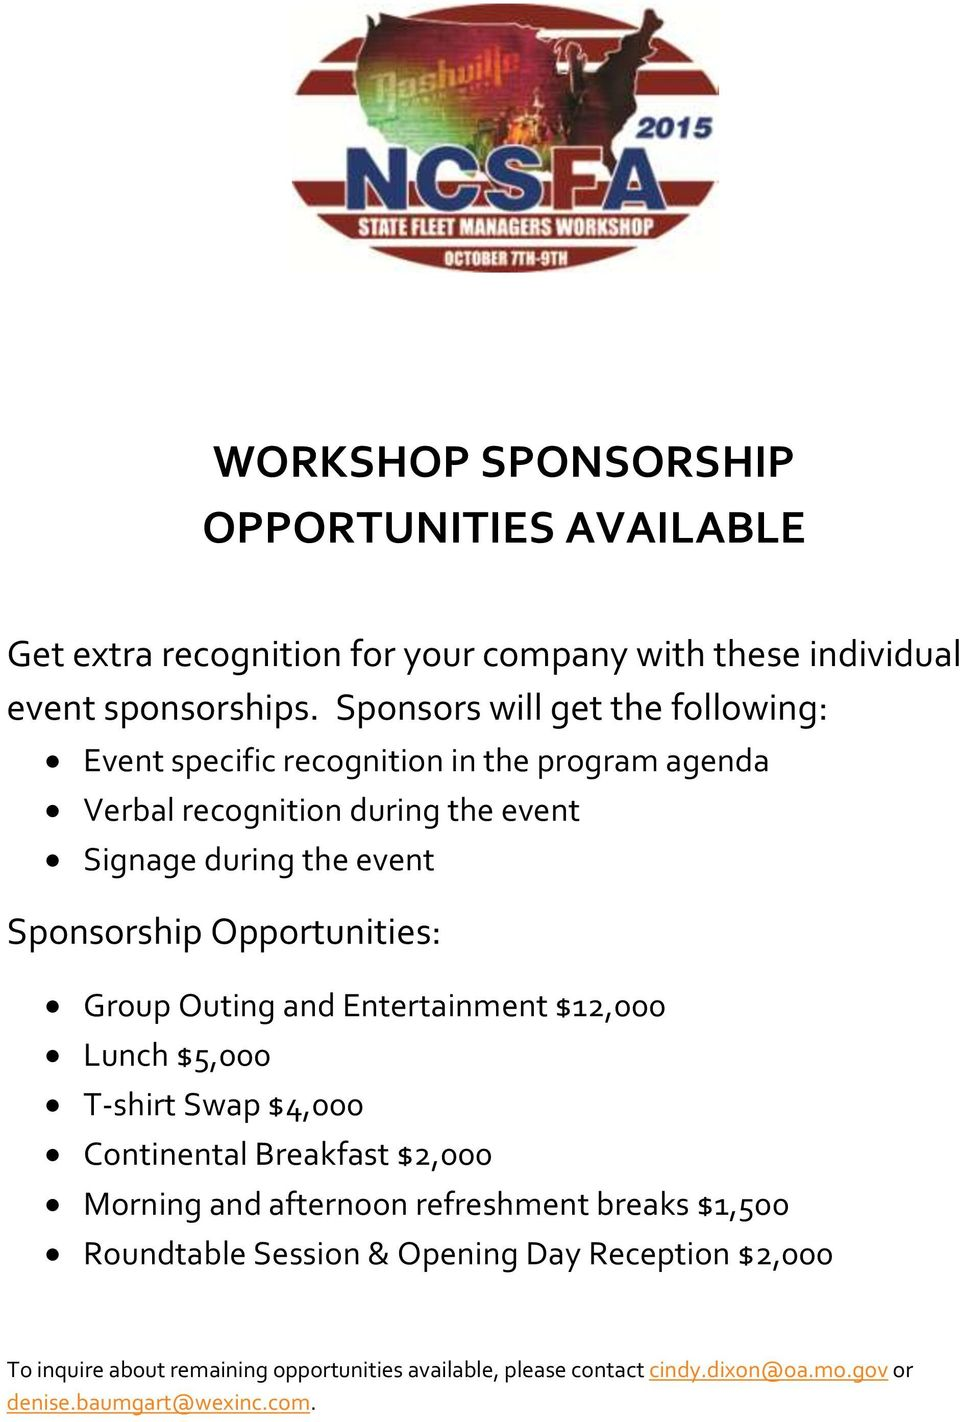 Sponsorship Opportunities: Group Outing and Entertainment $12,000 Lunch $5,000 T-shirt Swap $4,000 Continental Breakfast $2,000 Morning and afternoon